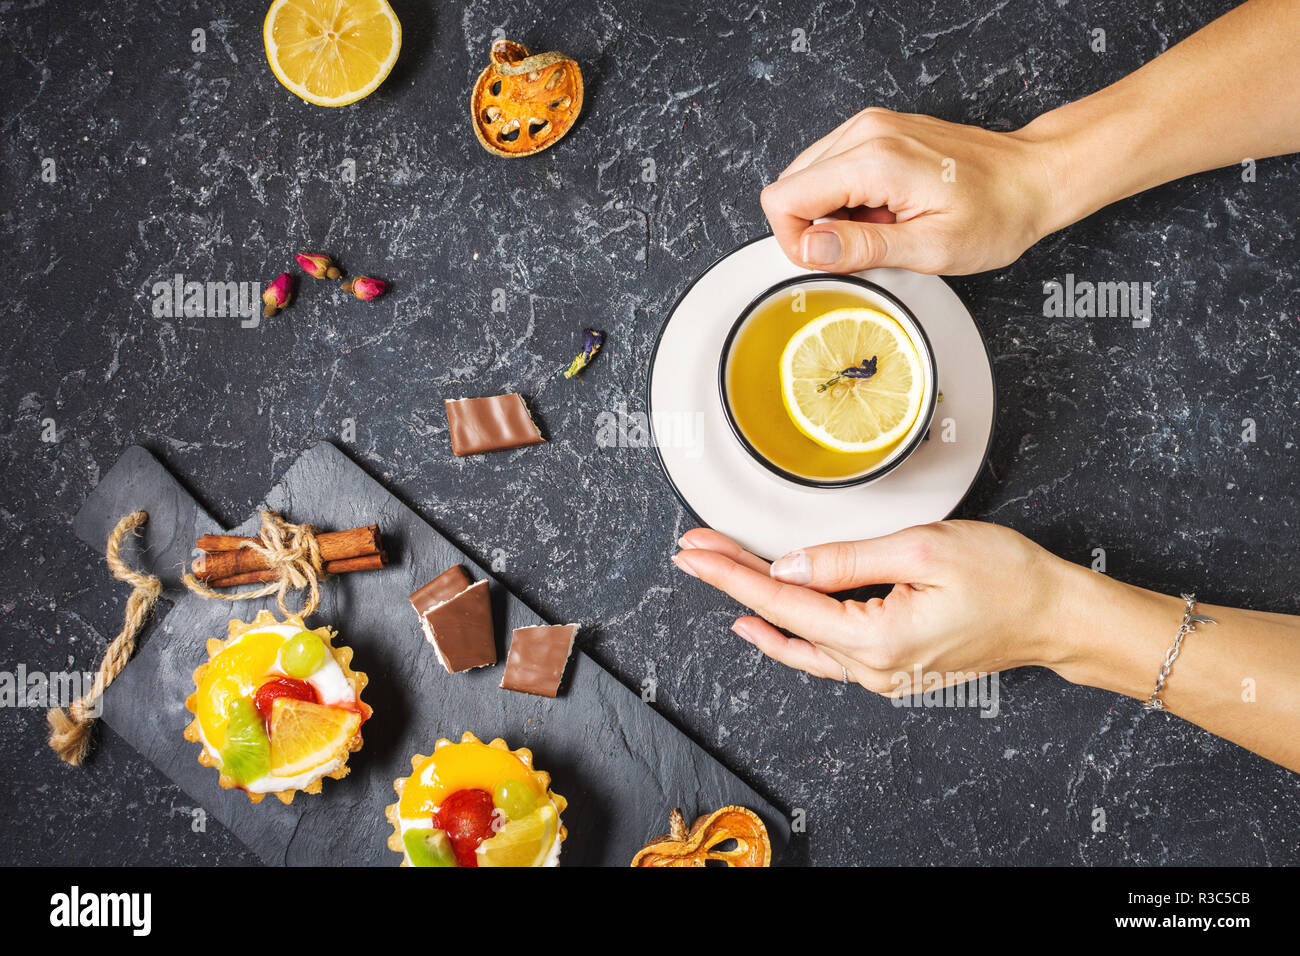 Female hands hold cup of tea on black stone background. Good morning concept. Top view - Stock Image